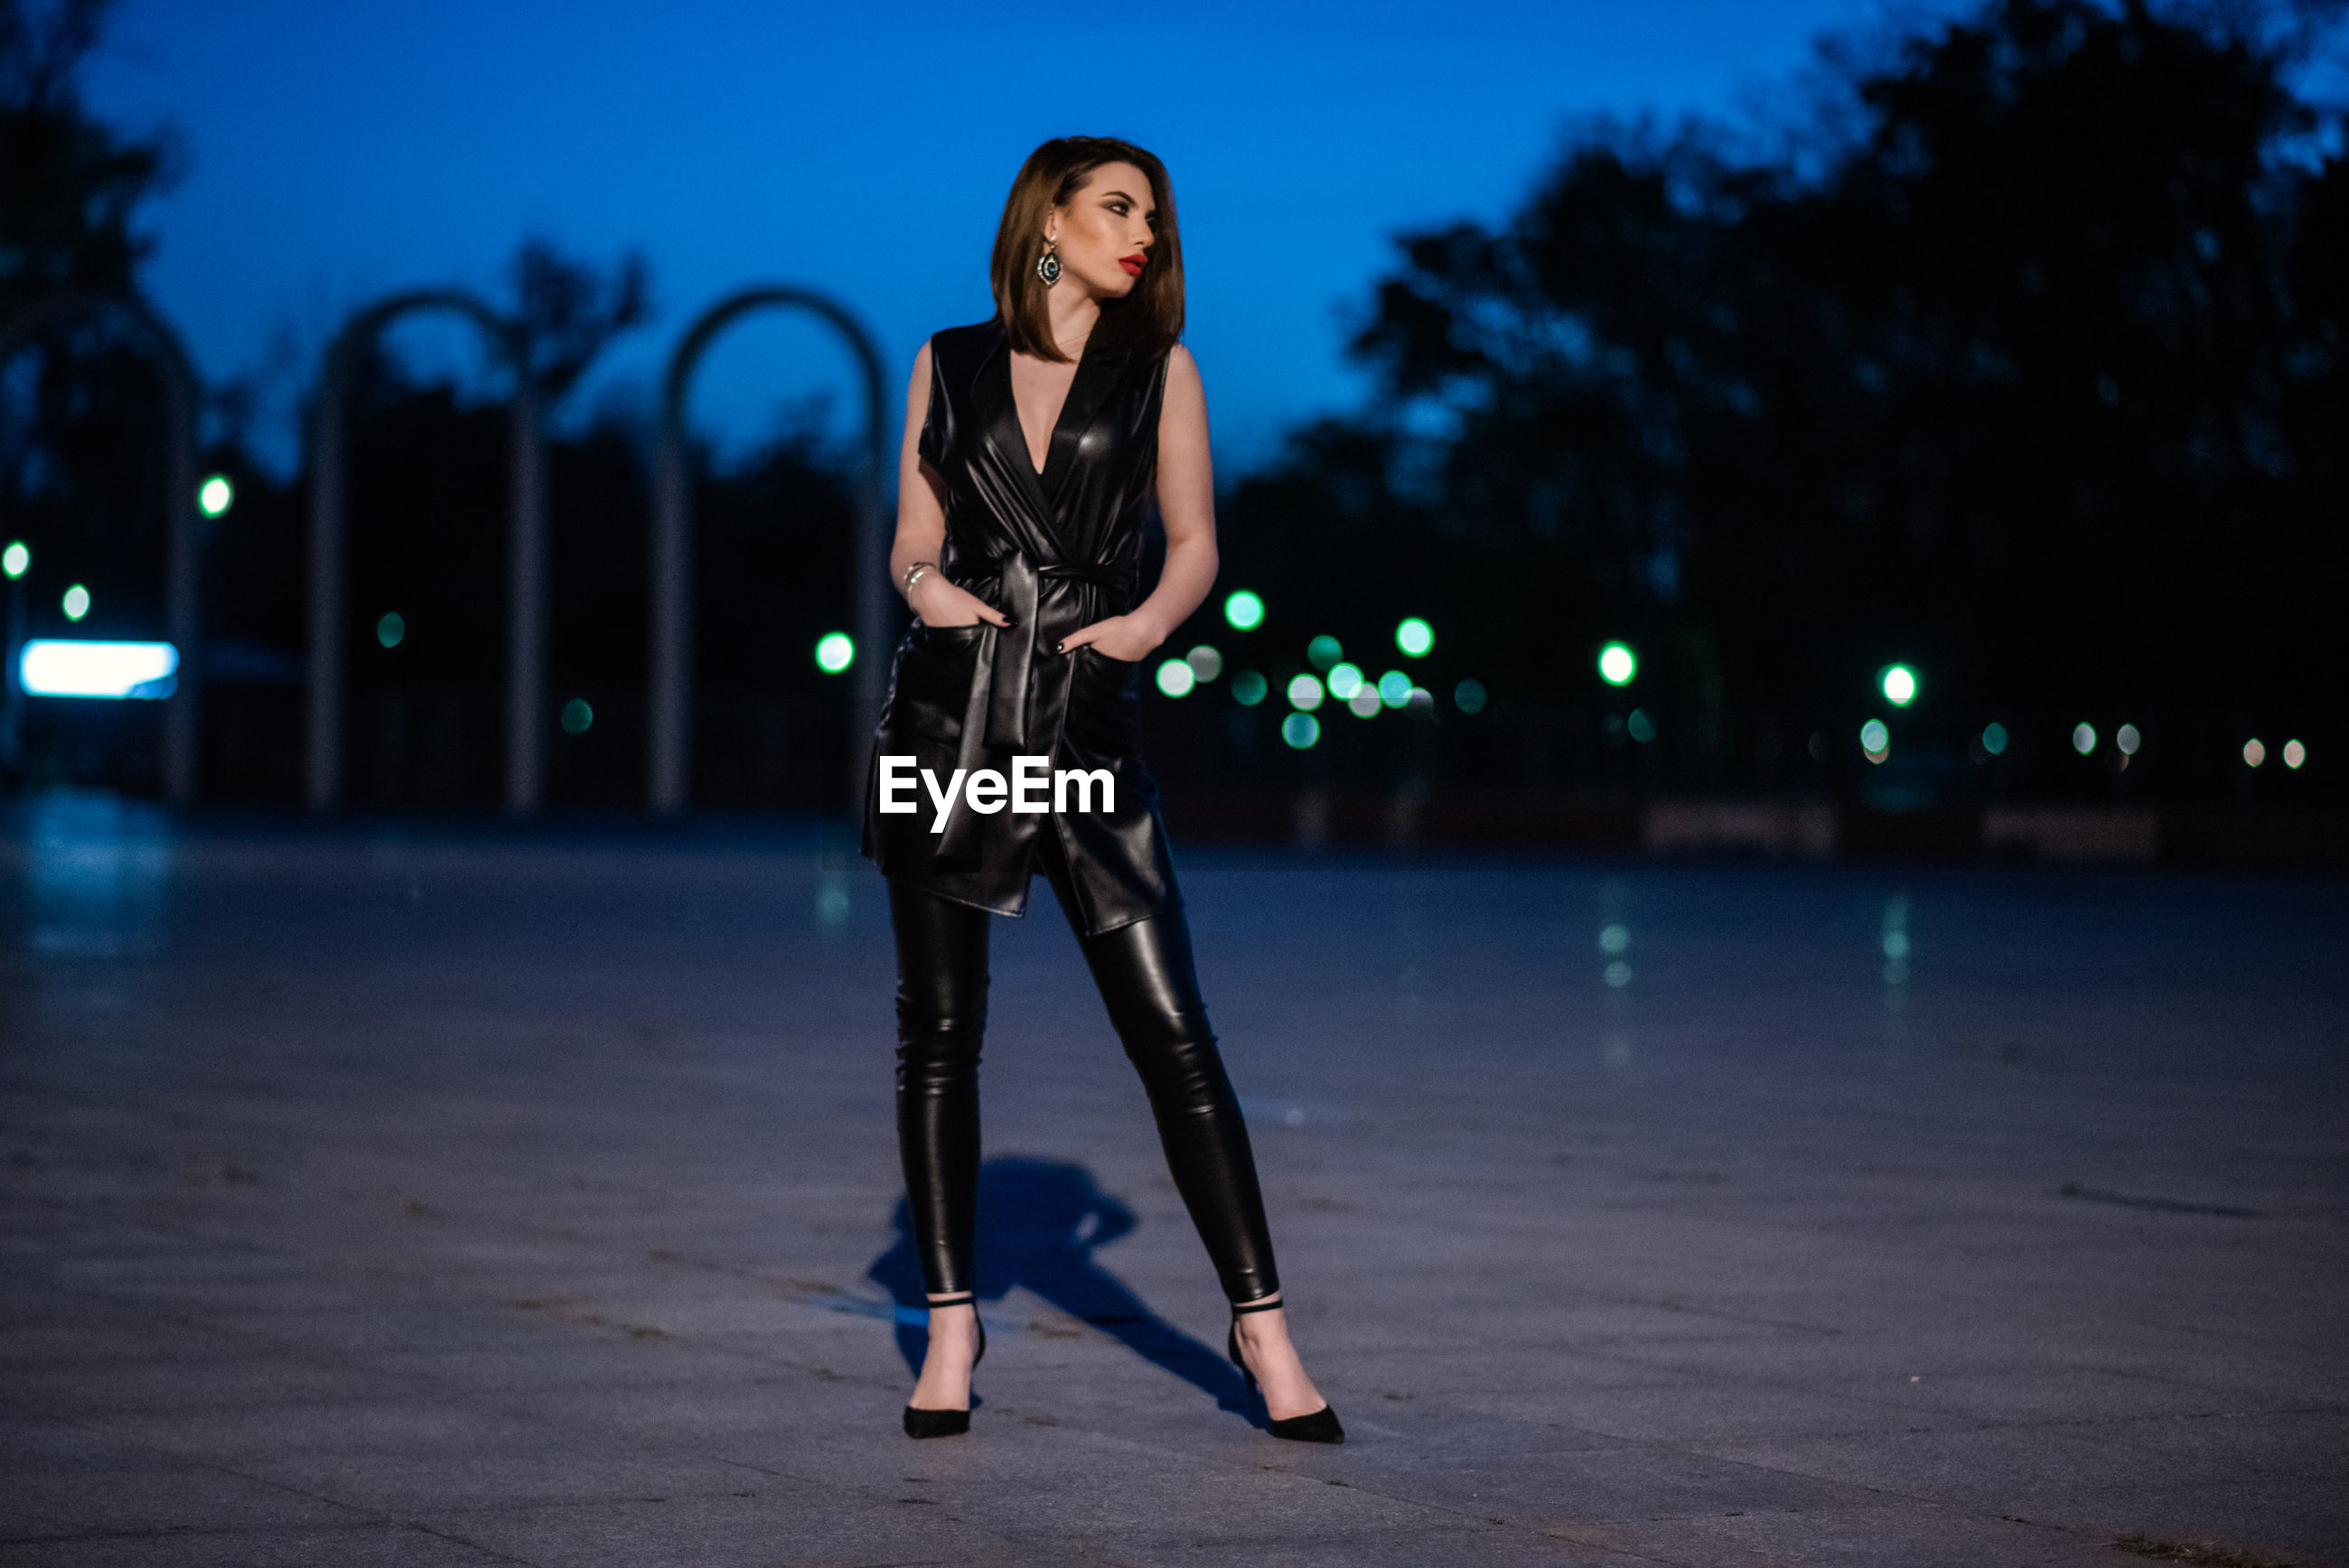 Full length portrait of woman standing at night